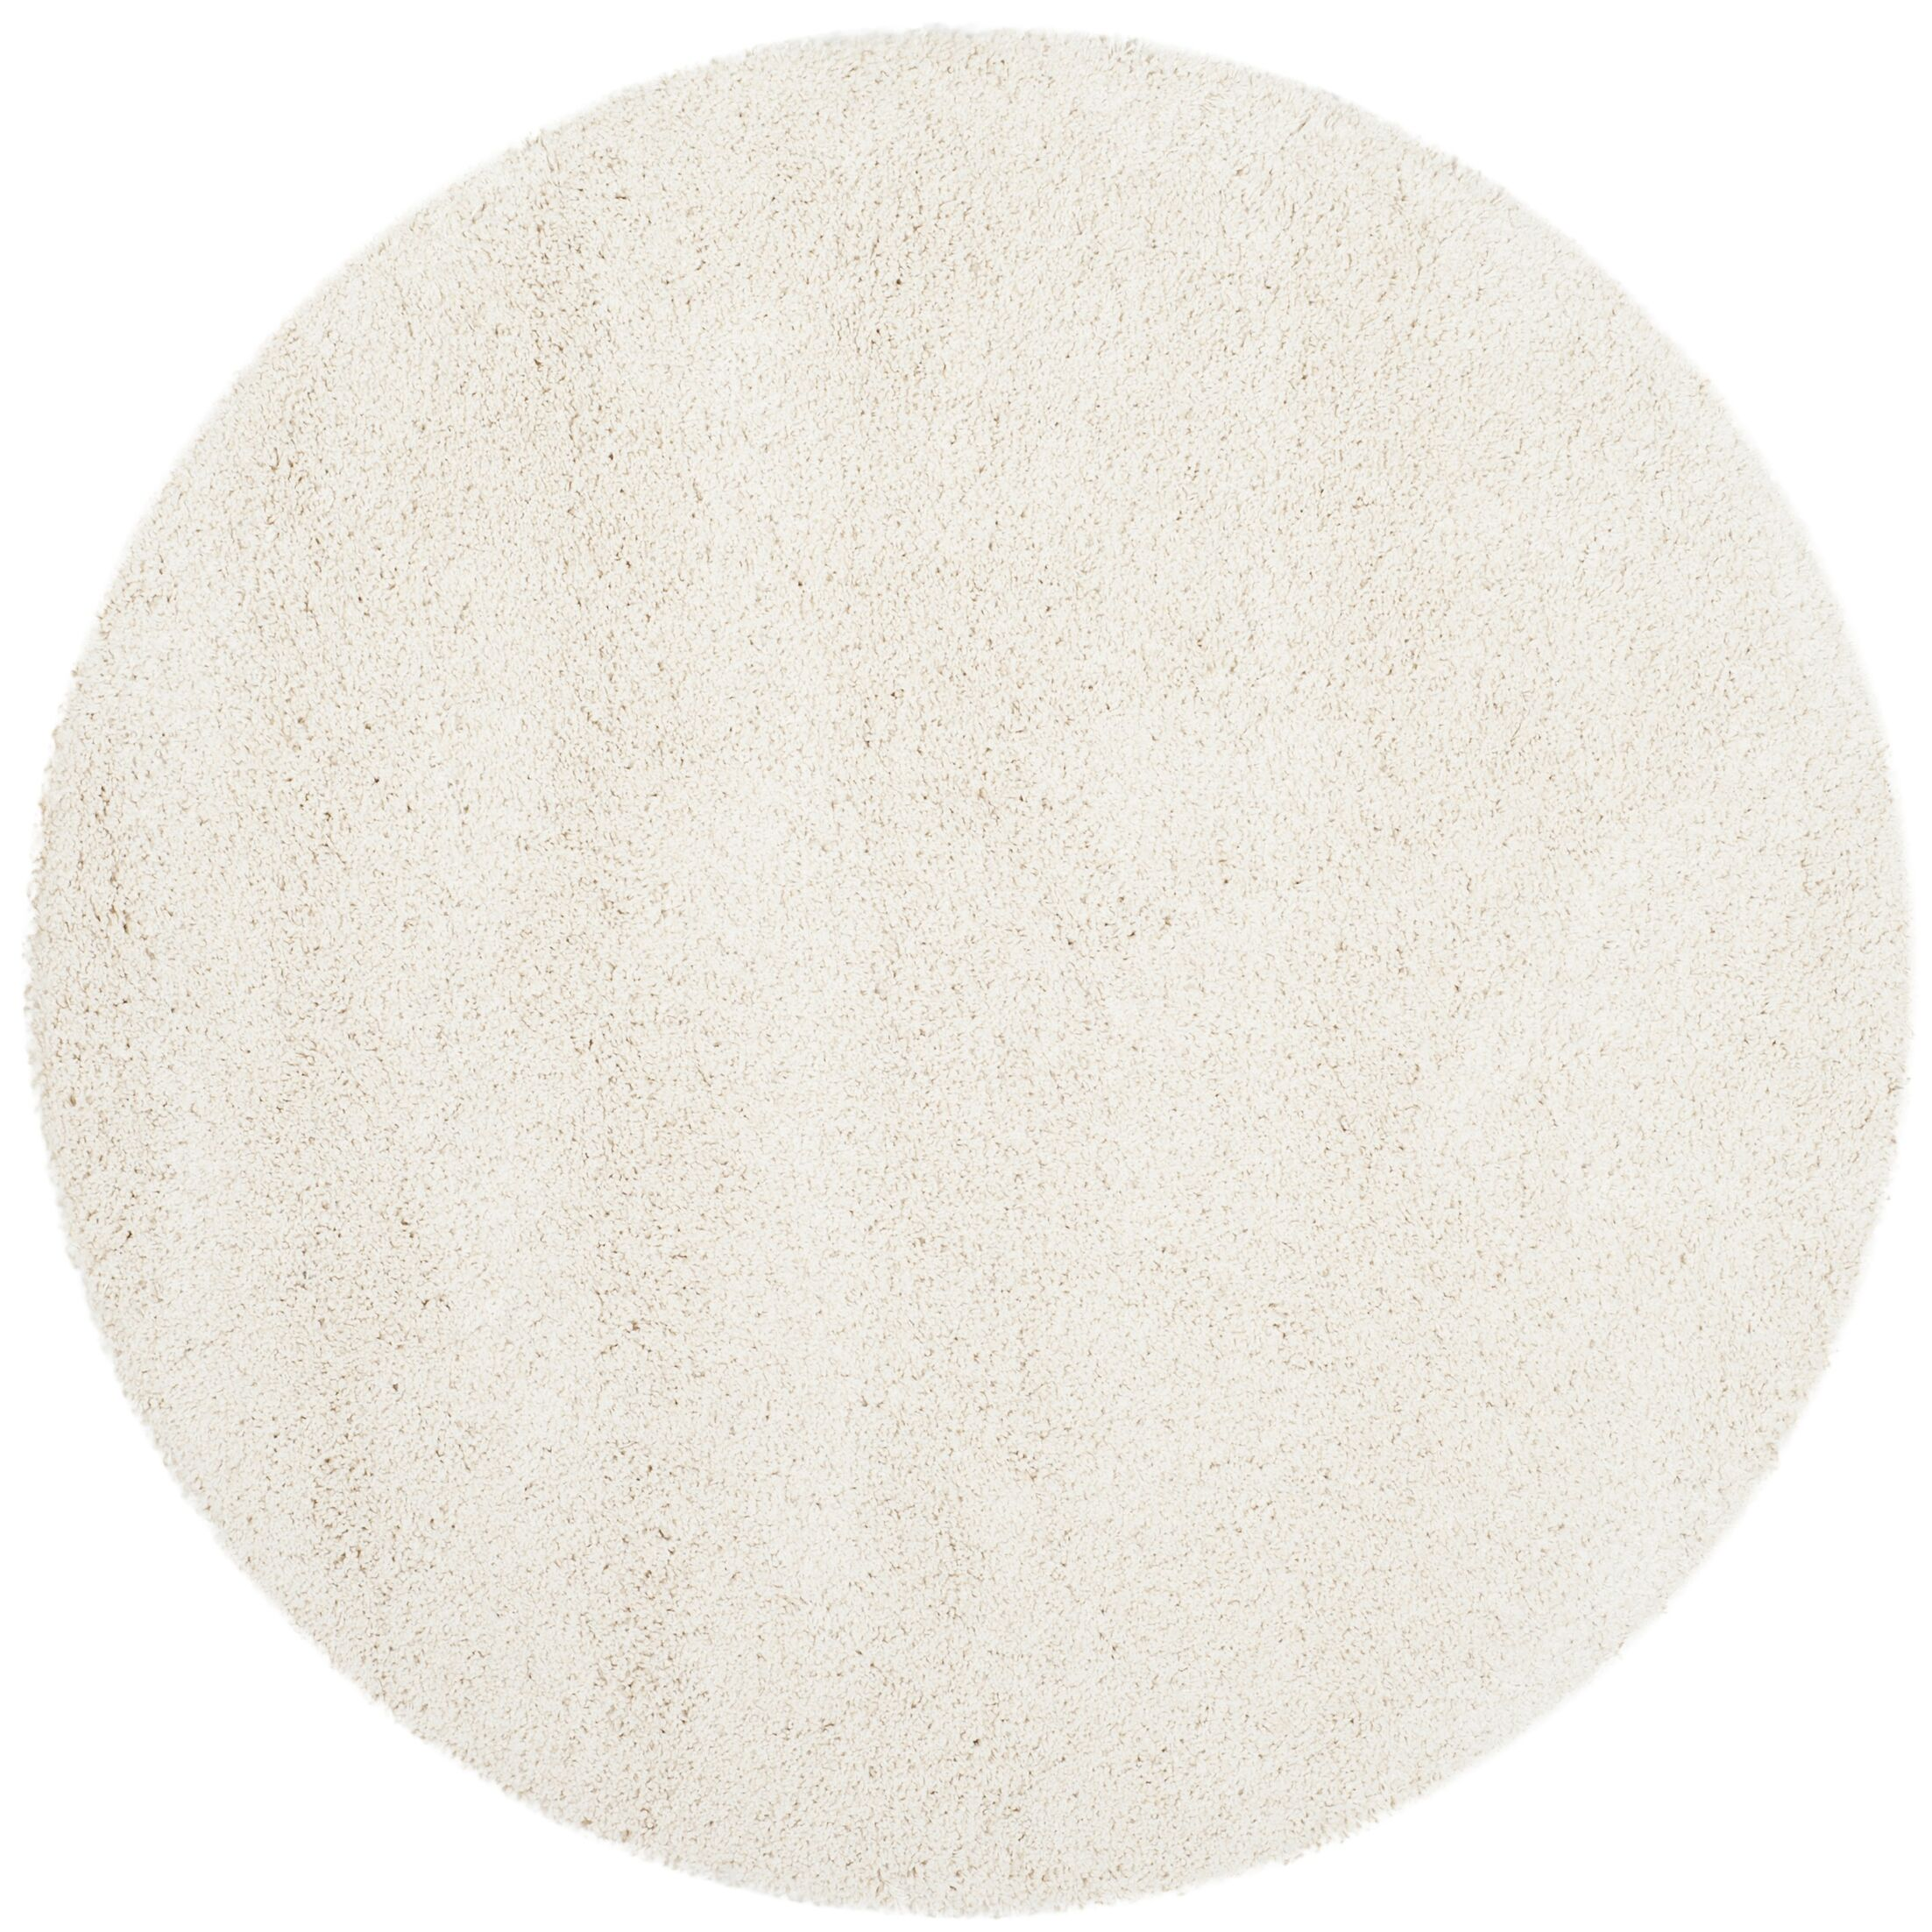 Starr Hill Solid Ivory Area Rug Rug Size: 10' X 10' Round